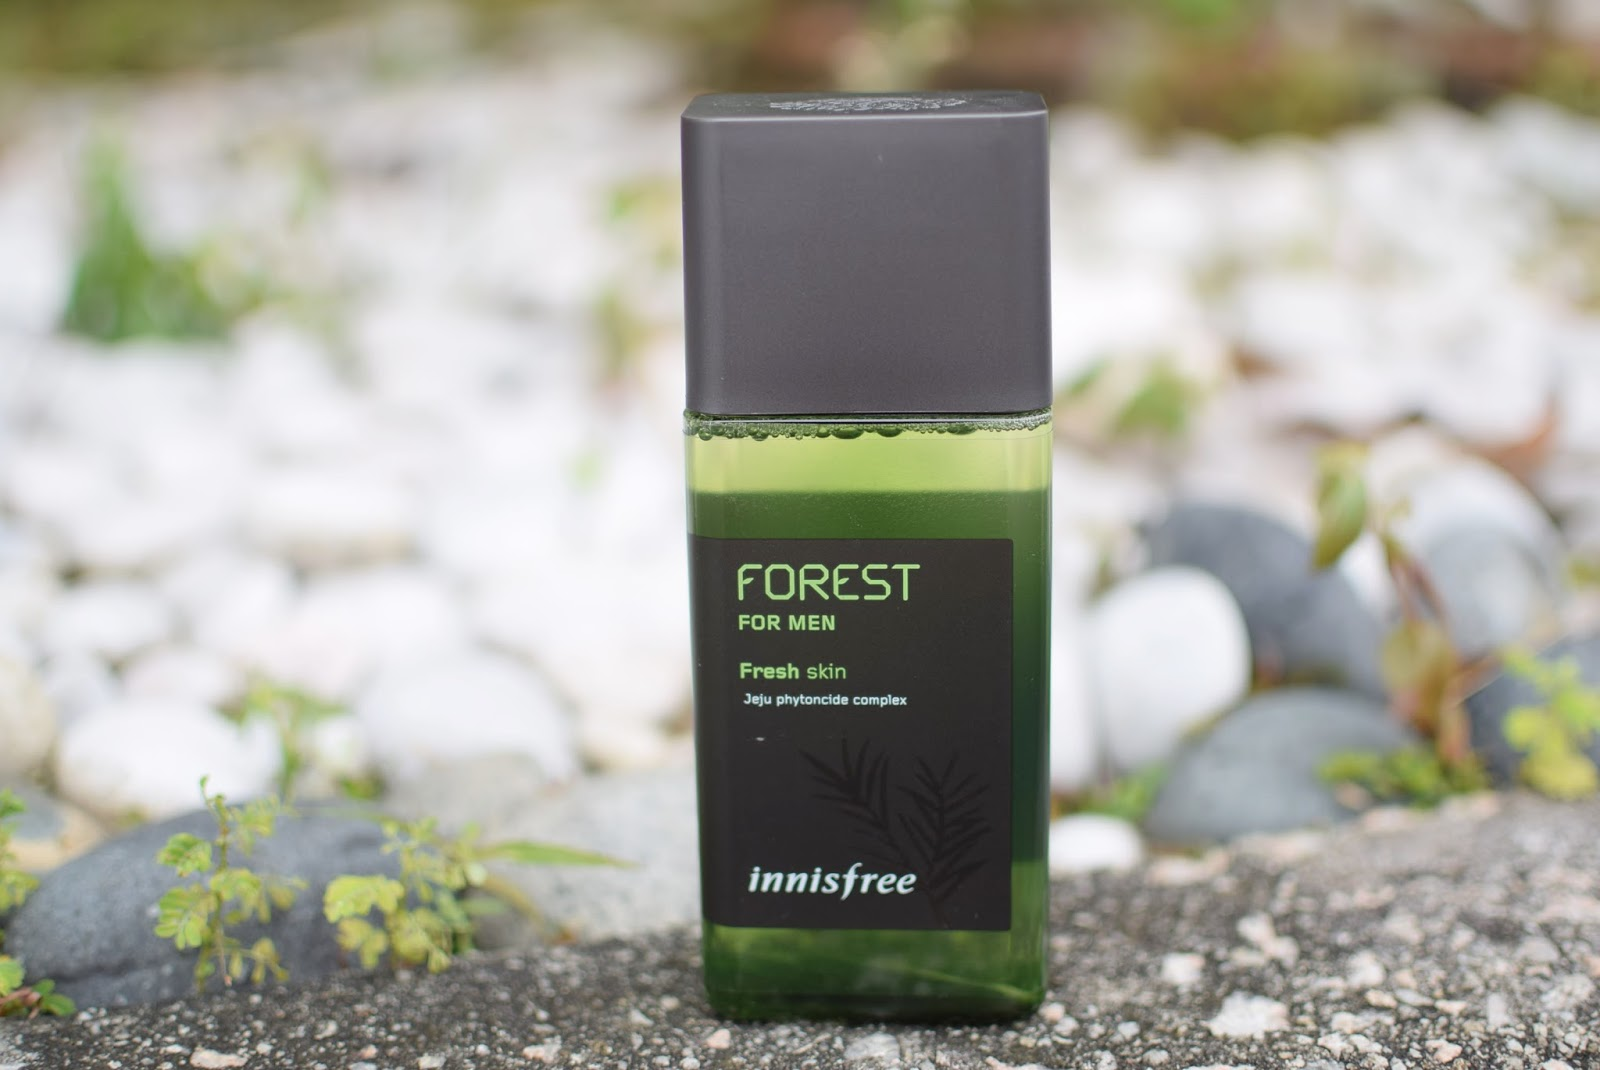 Image result for Innisfree Forest For Men Fresh Skin toner